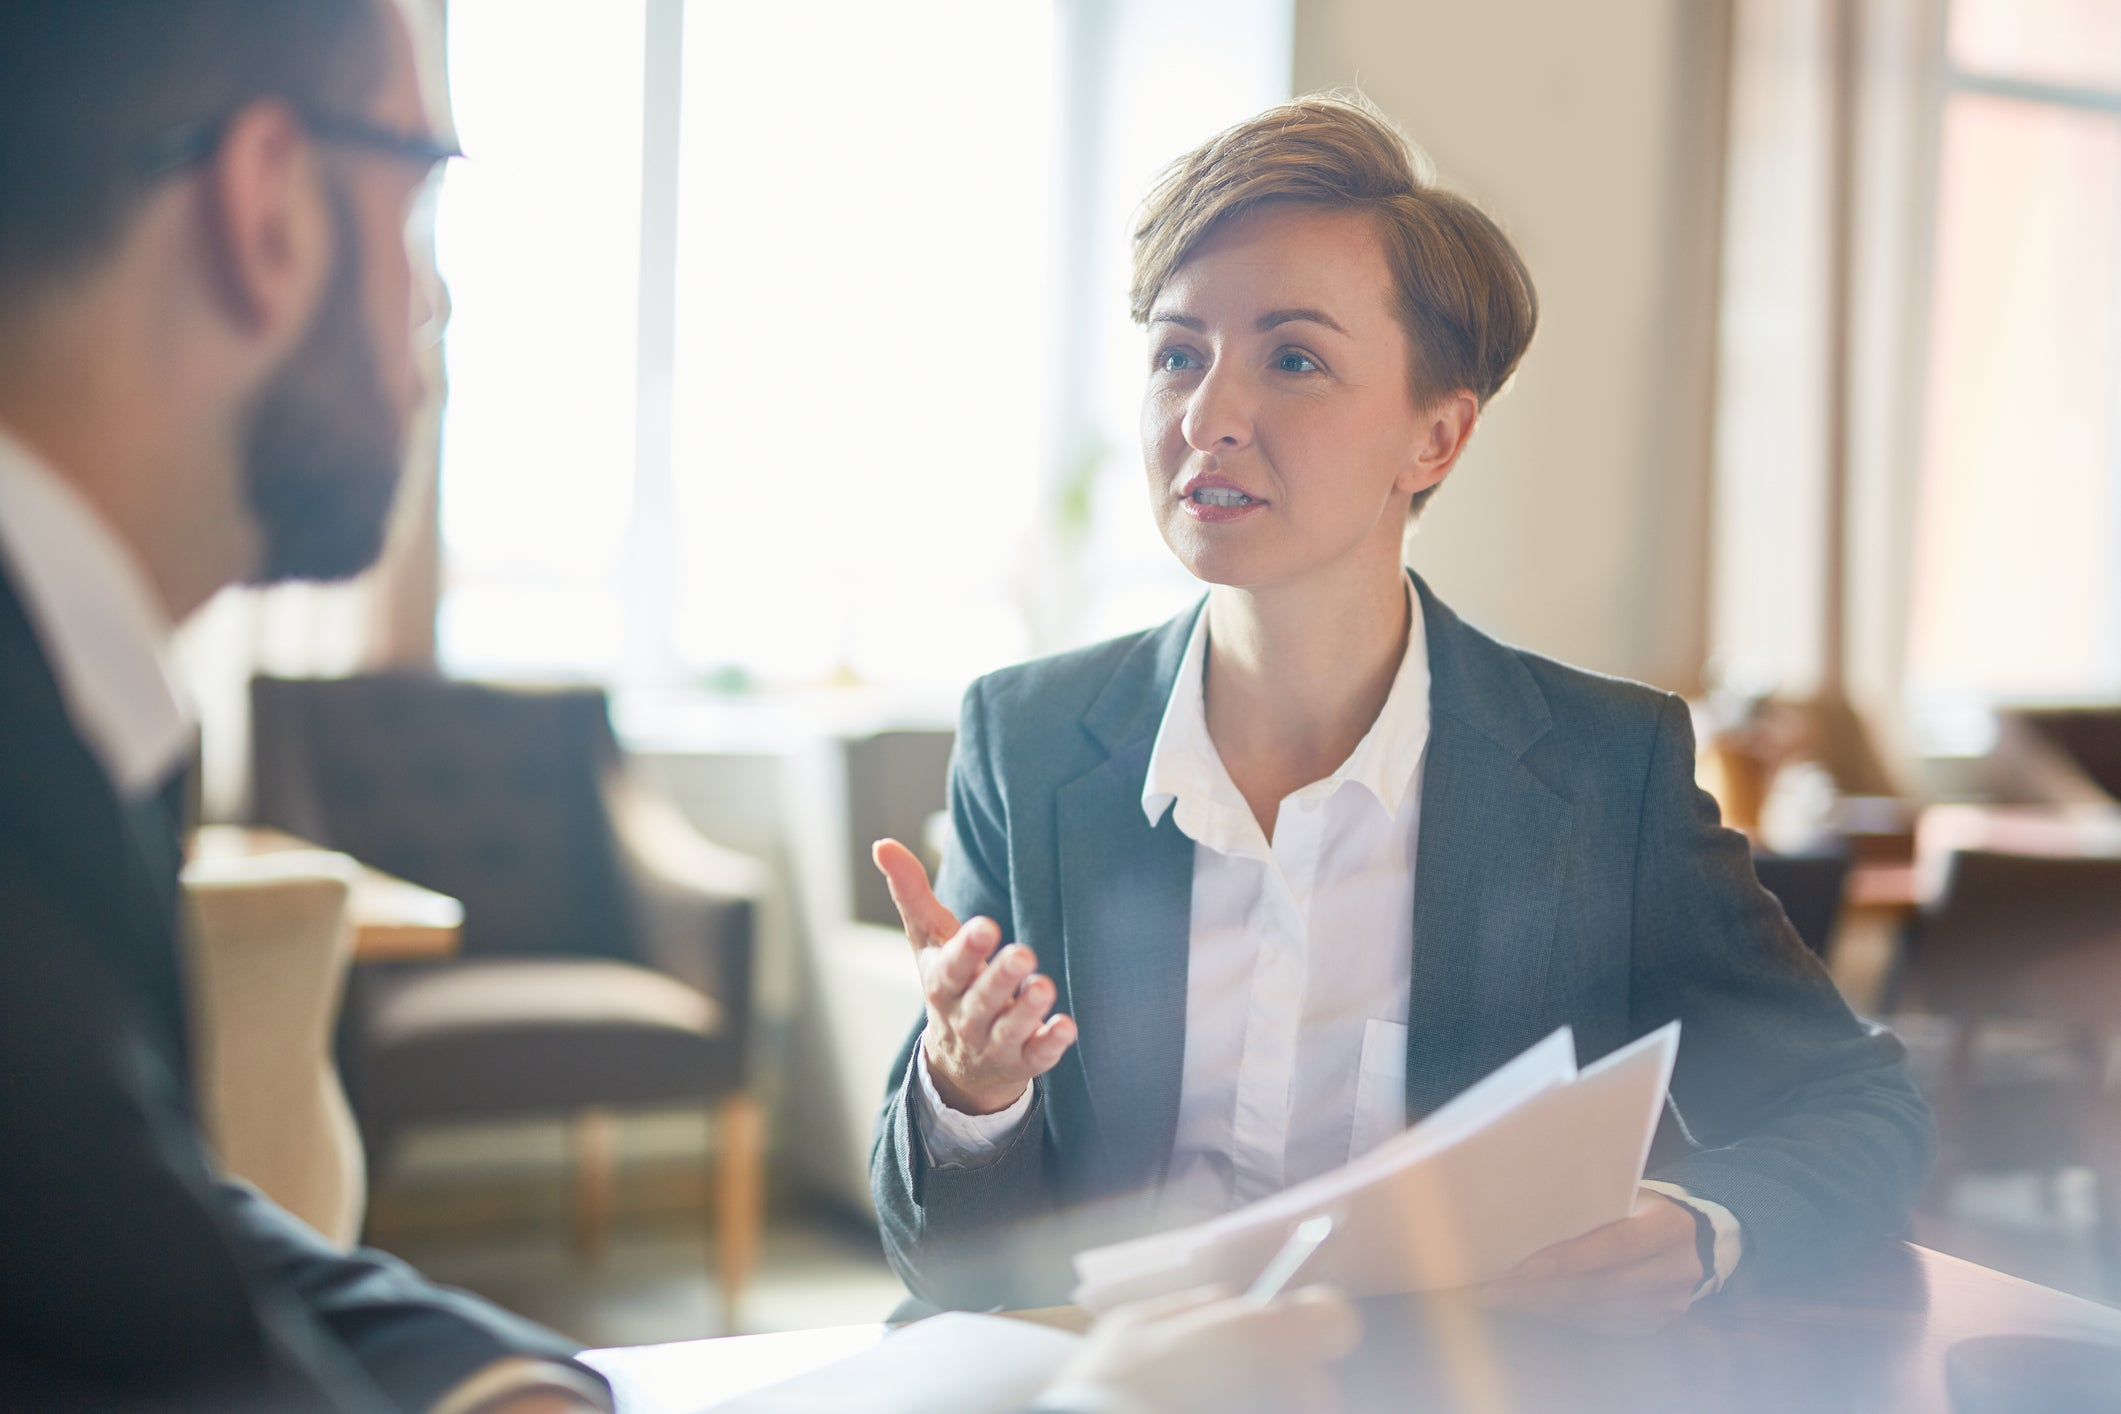 Negotiating a Raise: Should You Ask for More Money Than You